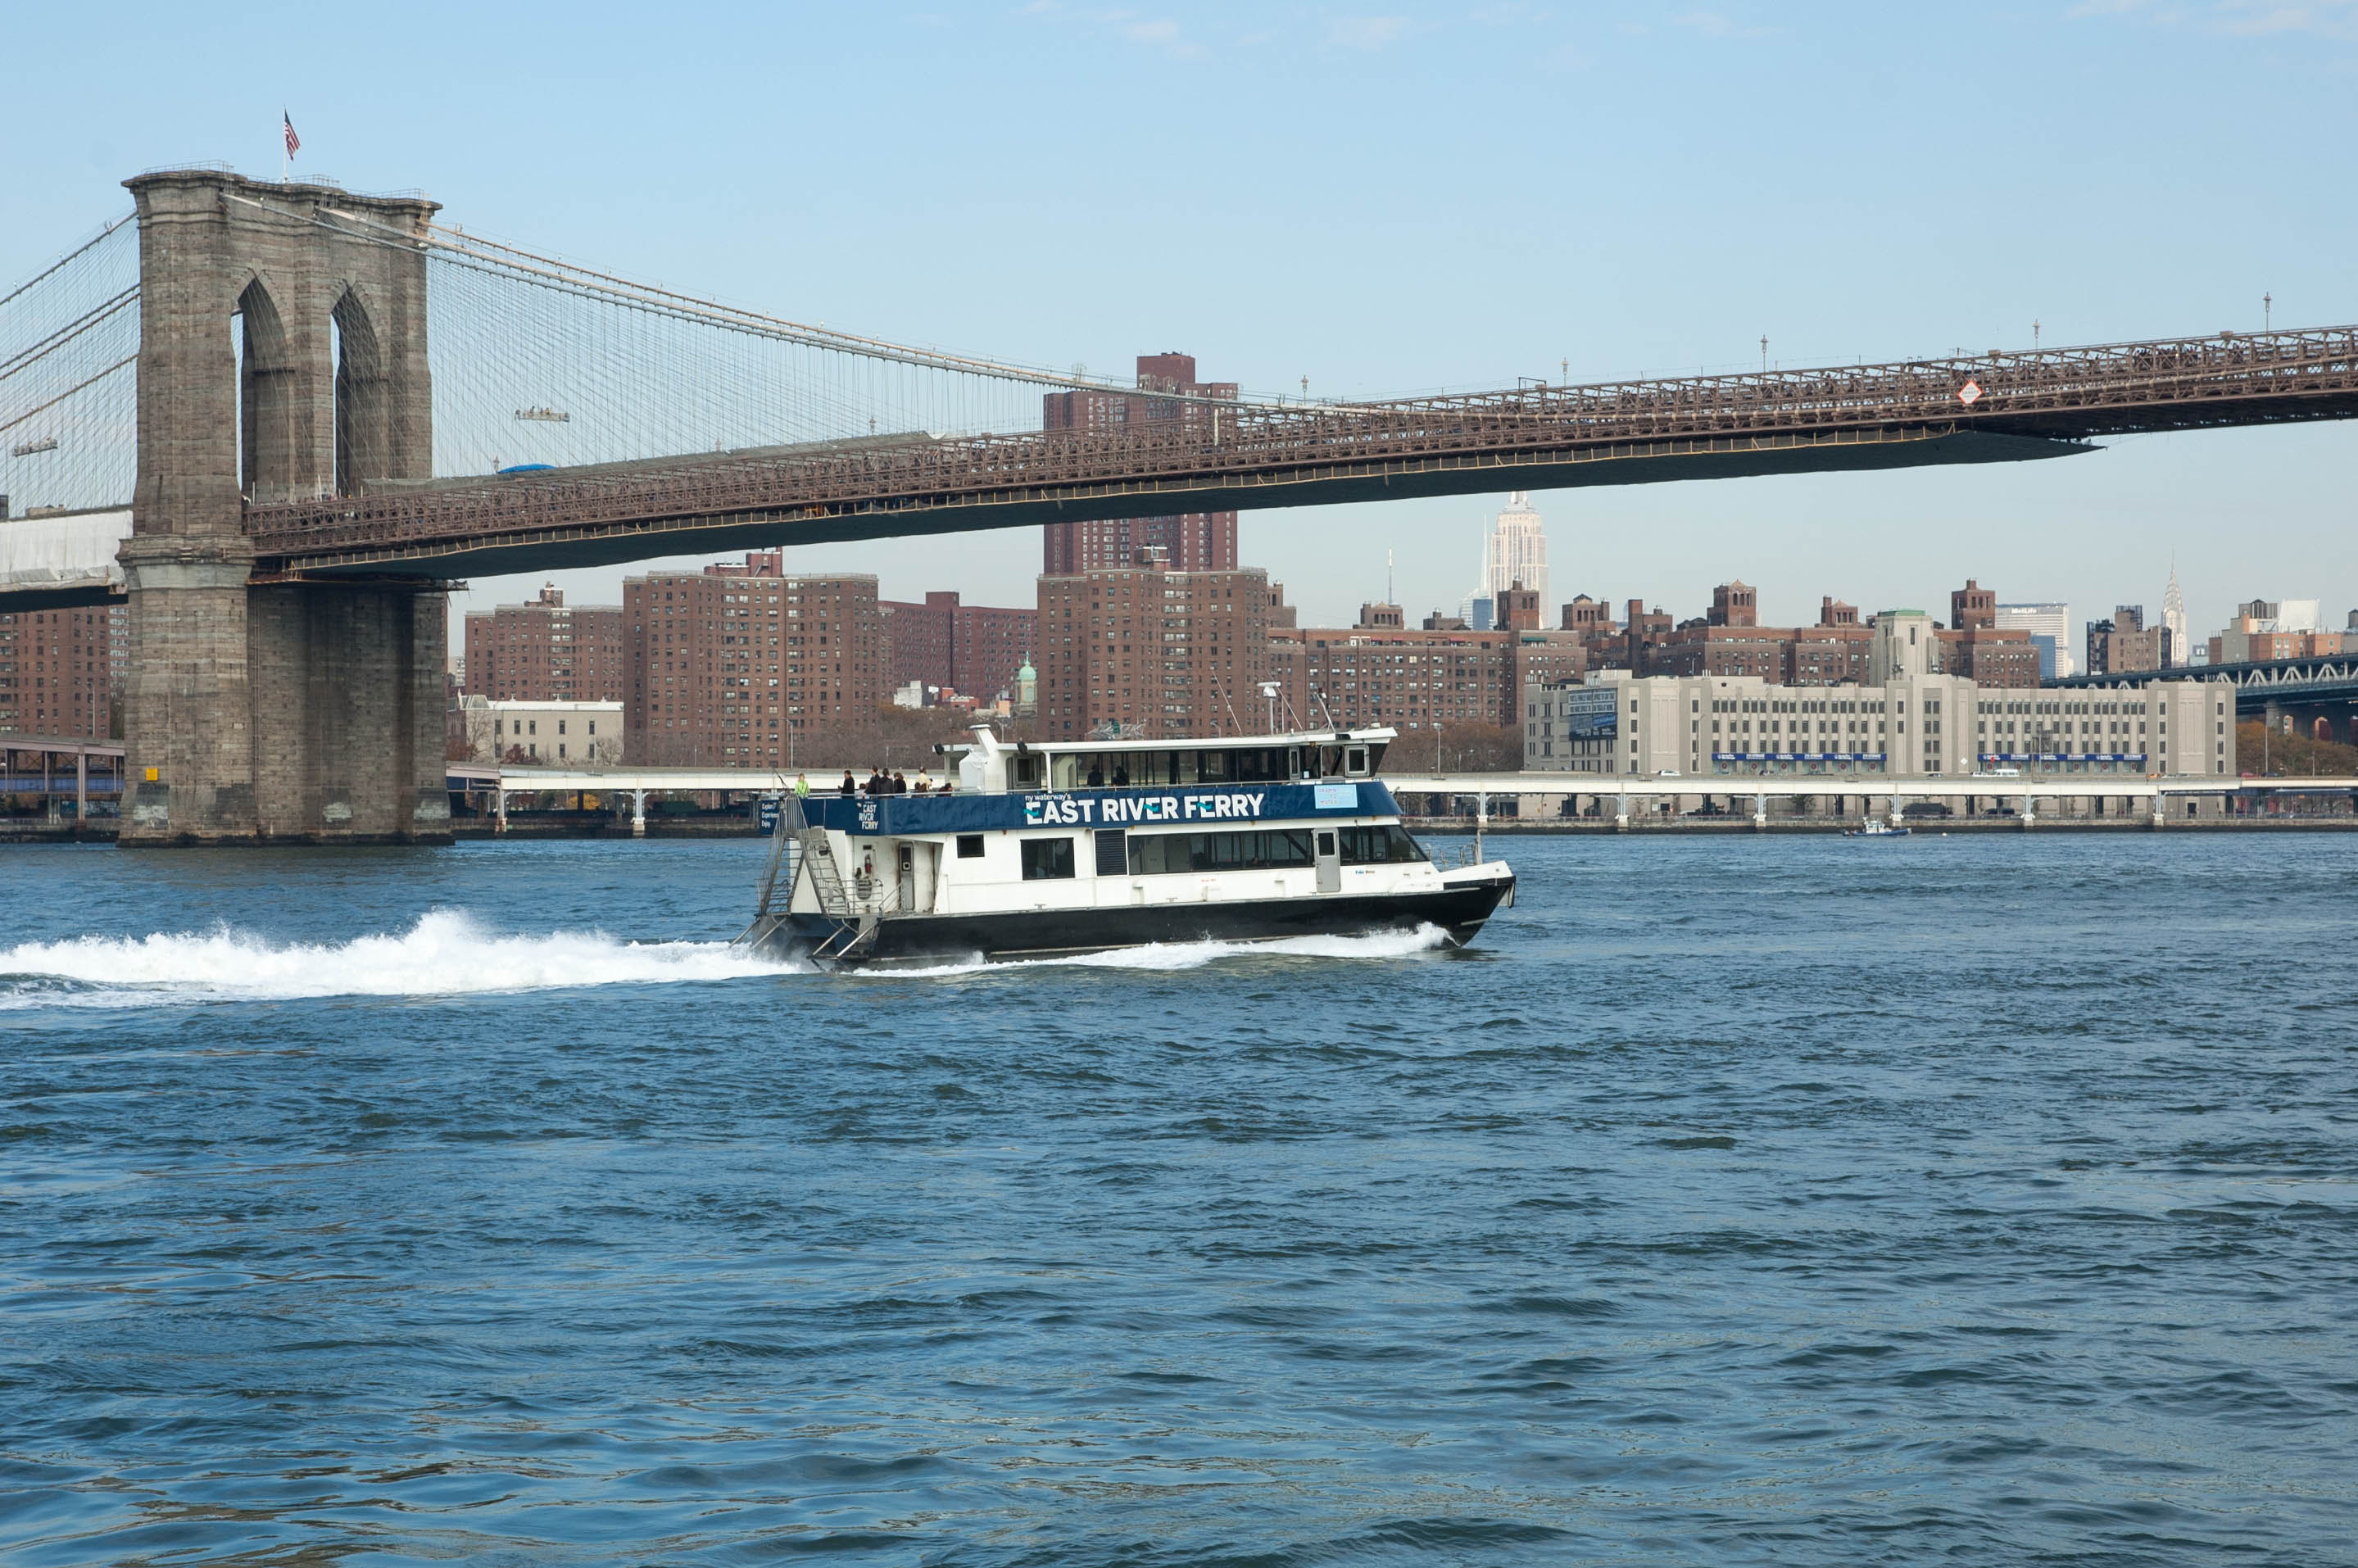 file:east river ferry, new york, new york - wikimedia commons